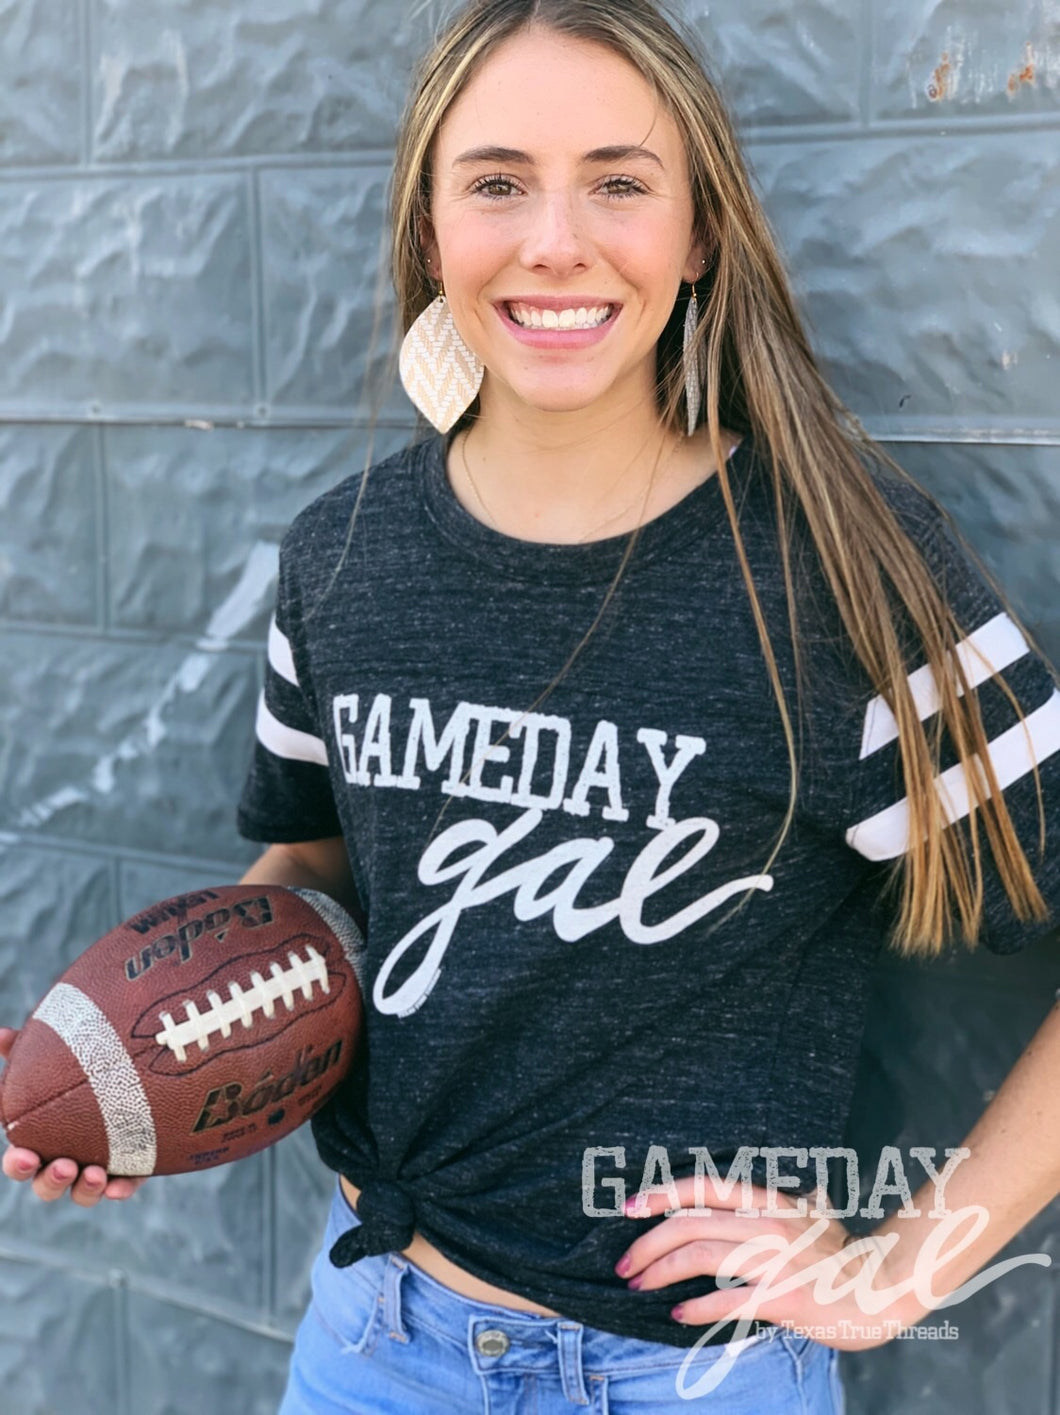 GameDay Gal Varsity Tee Graphic Tee  Texas True Threads - Horse Creek Boutique